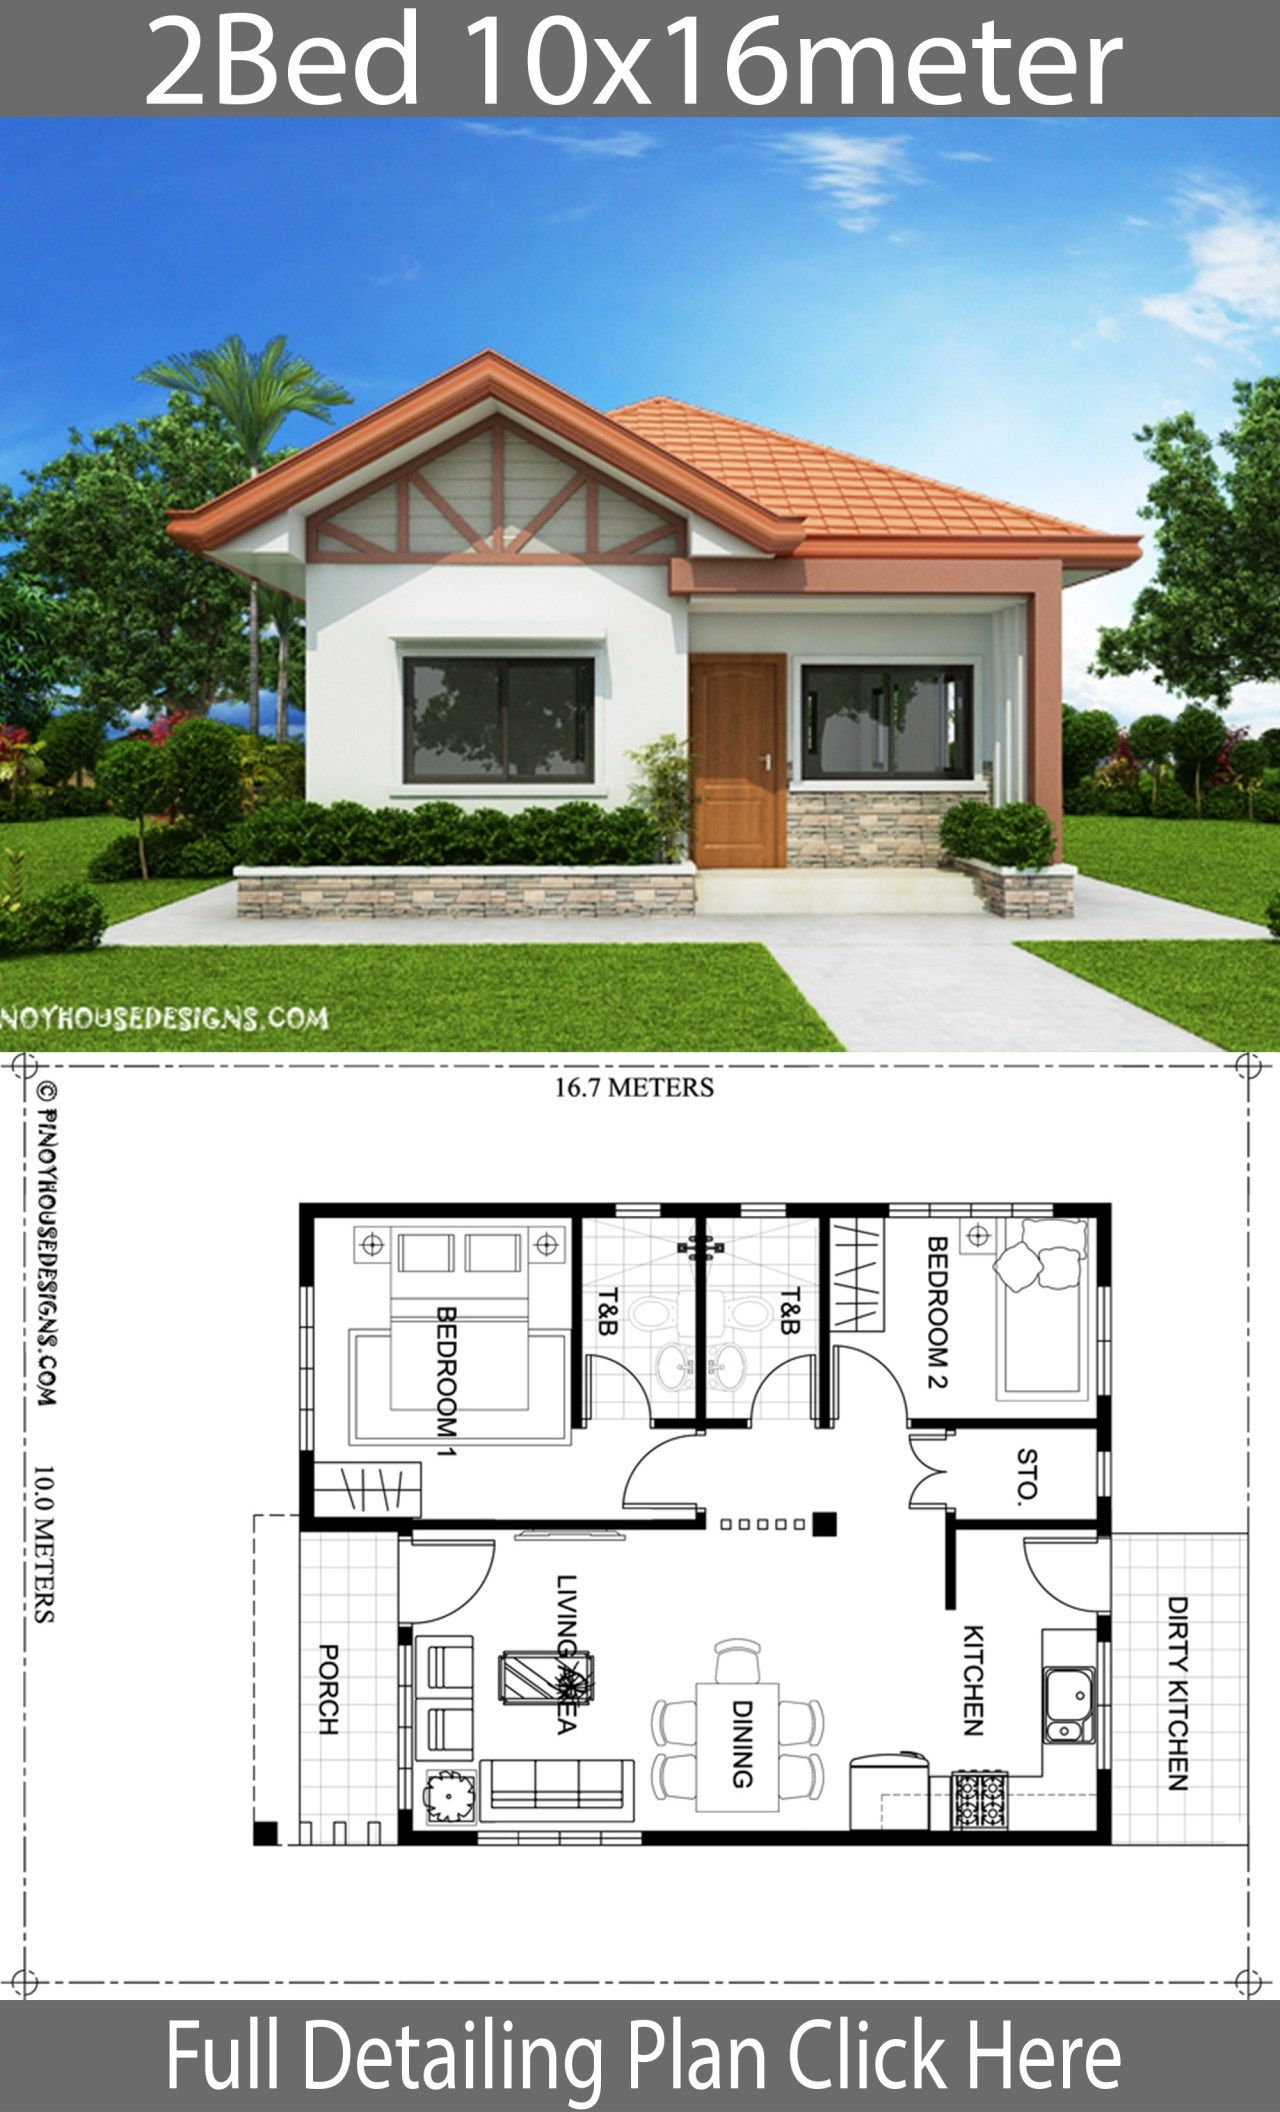 Home Design Plan 10x16m With 2 Bedrooms Home Ideas Affordable House Plans House Construction Plan Small House Design Plans